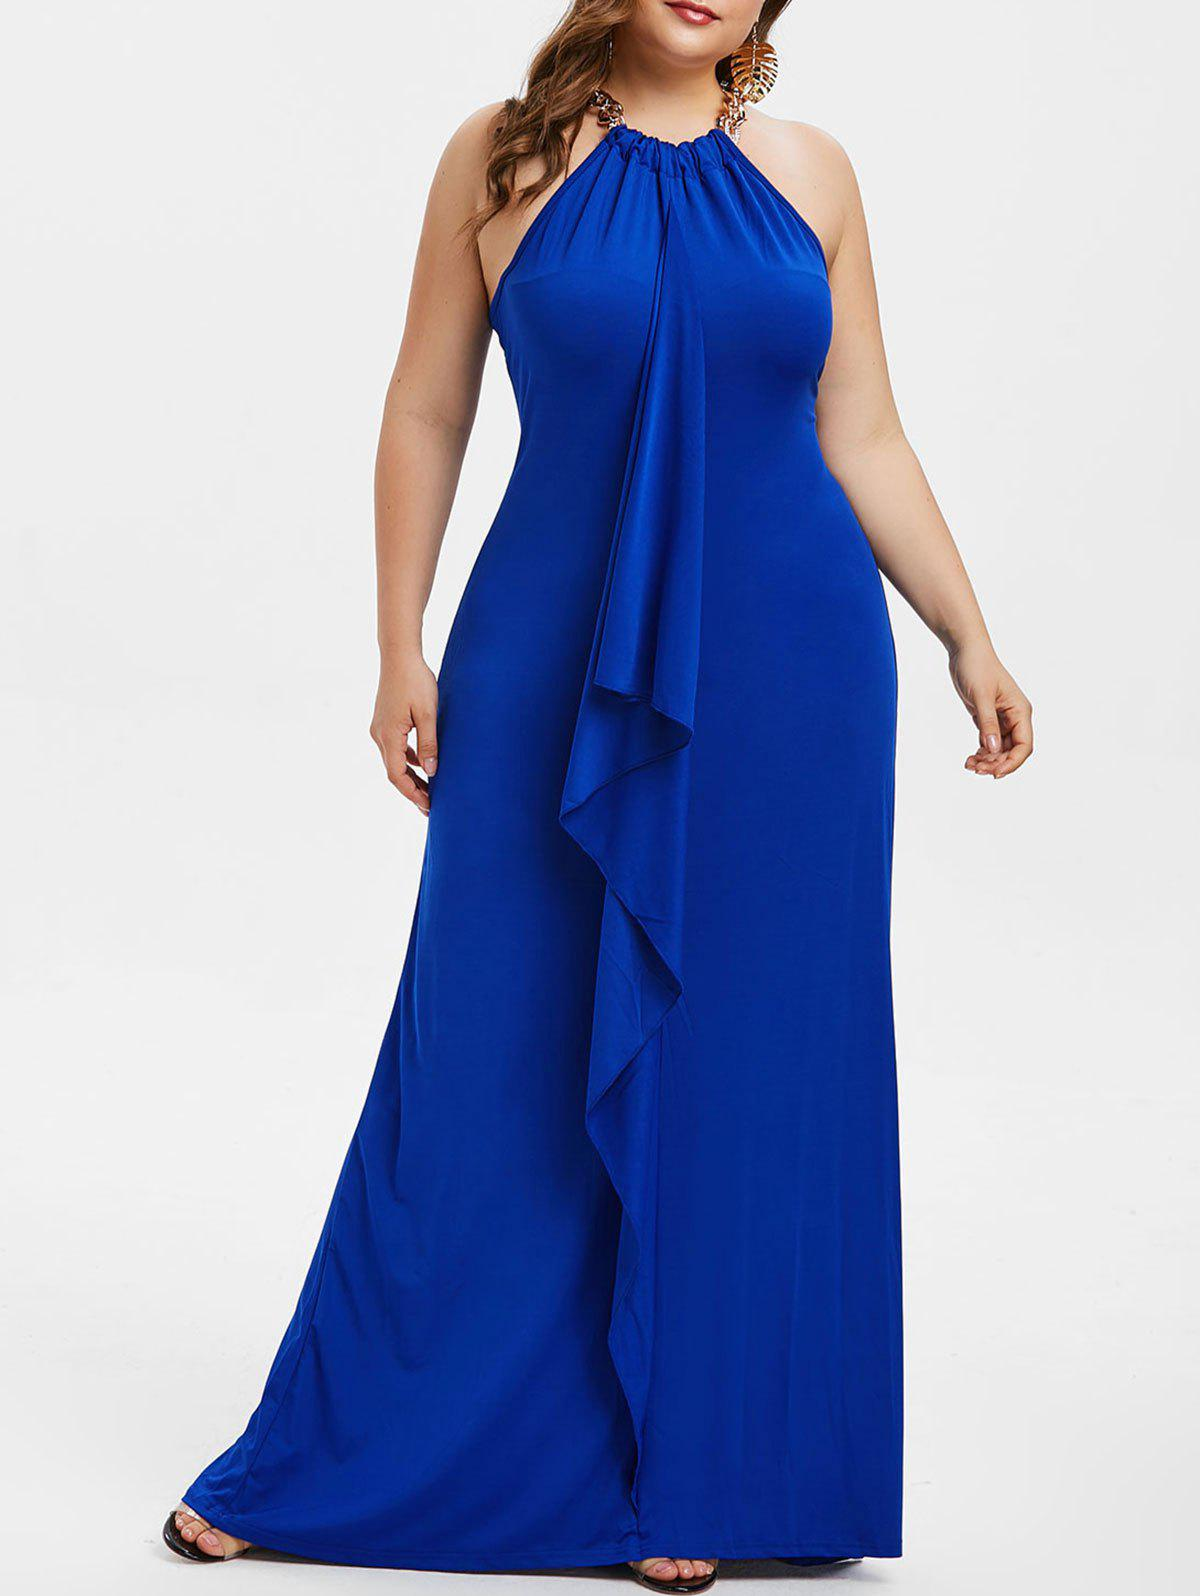 71ca9df5a7a 2019 Plus Size Ruffled Cocktail Party Maxi Dress